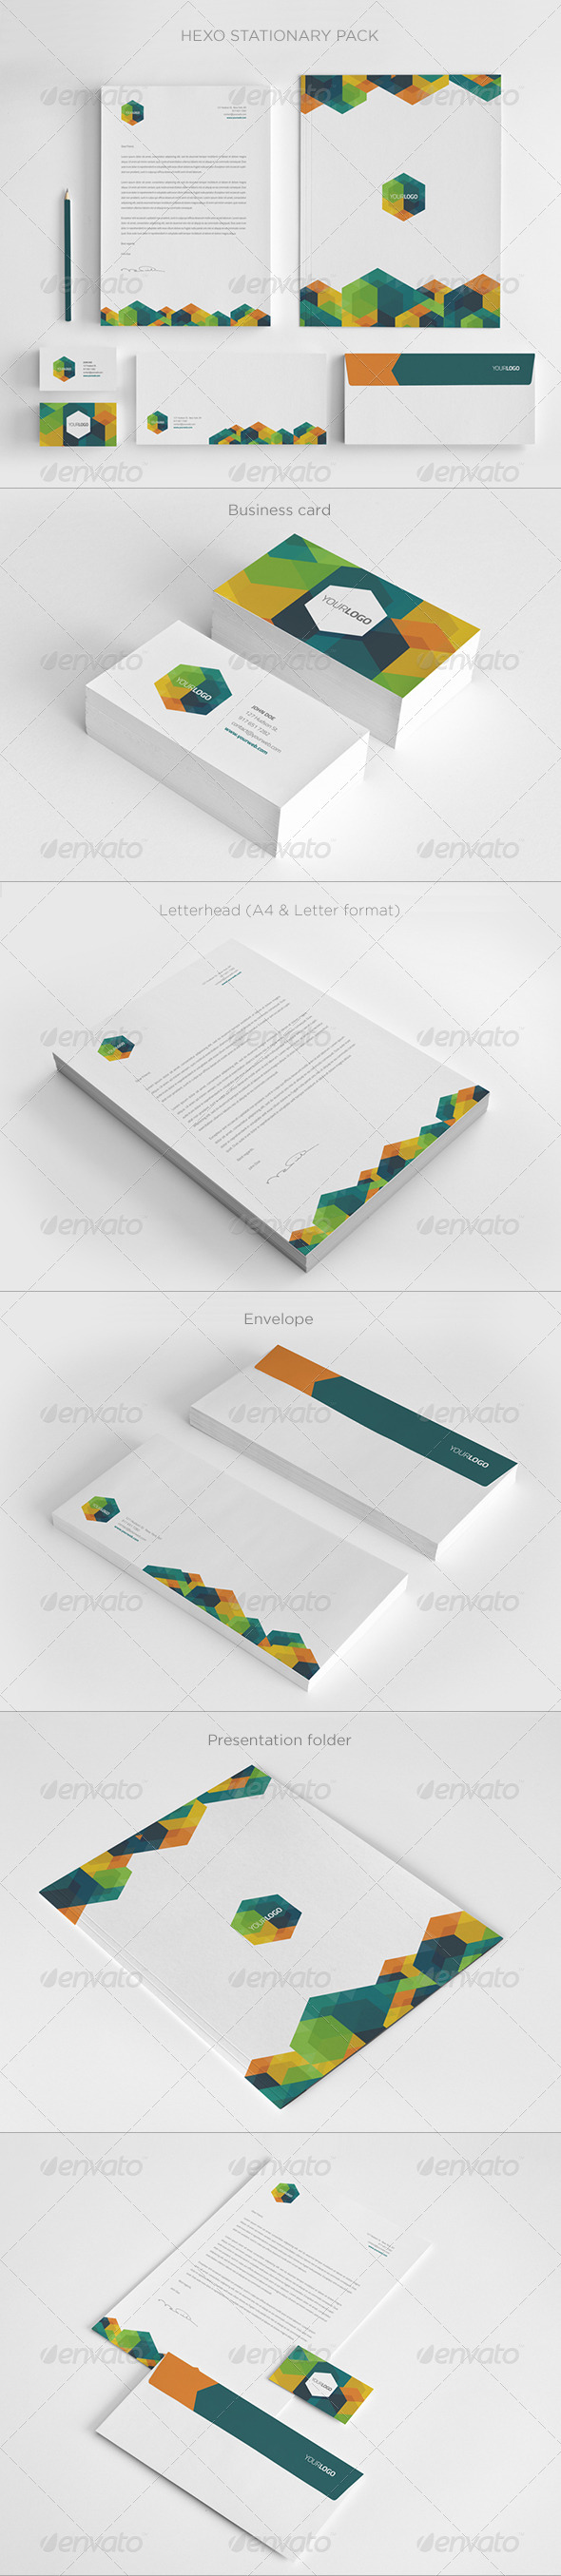 GraphicRiver Modern Hexo Stationary Pack 5812507